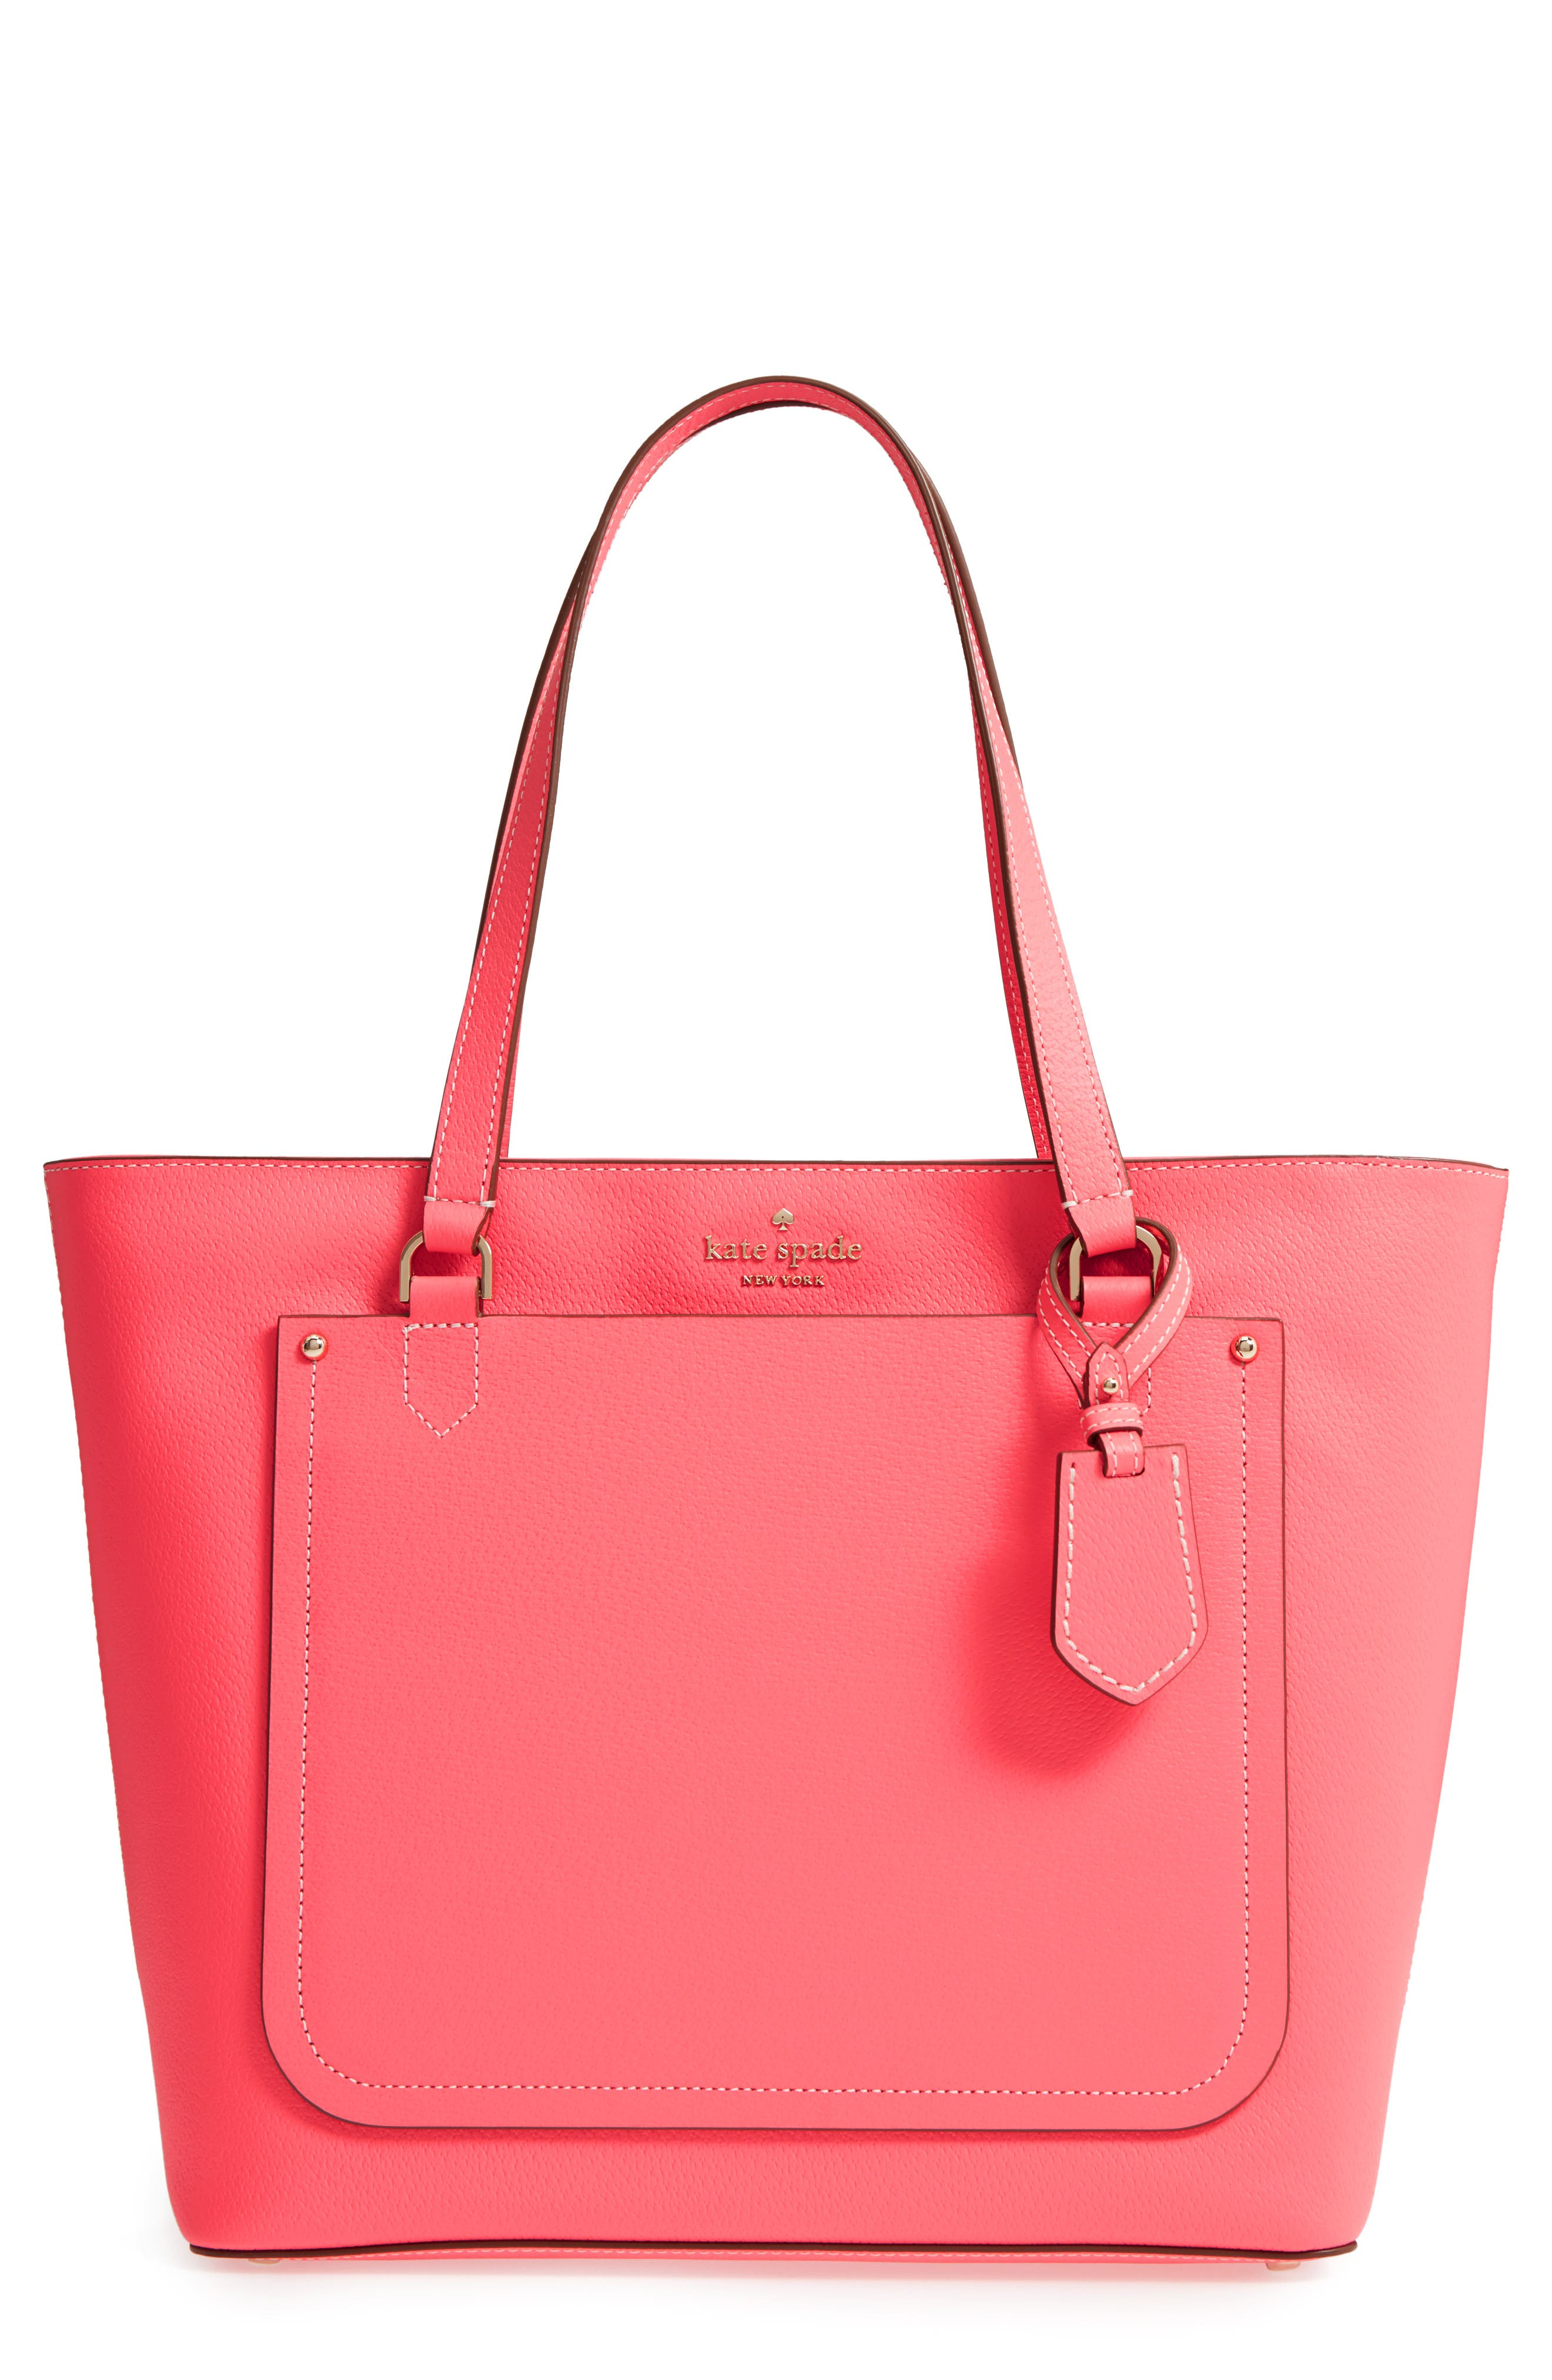 thompson street - kimberly leather tote,                         Main,                         color, 652